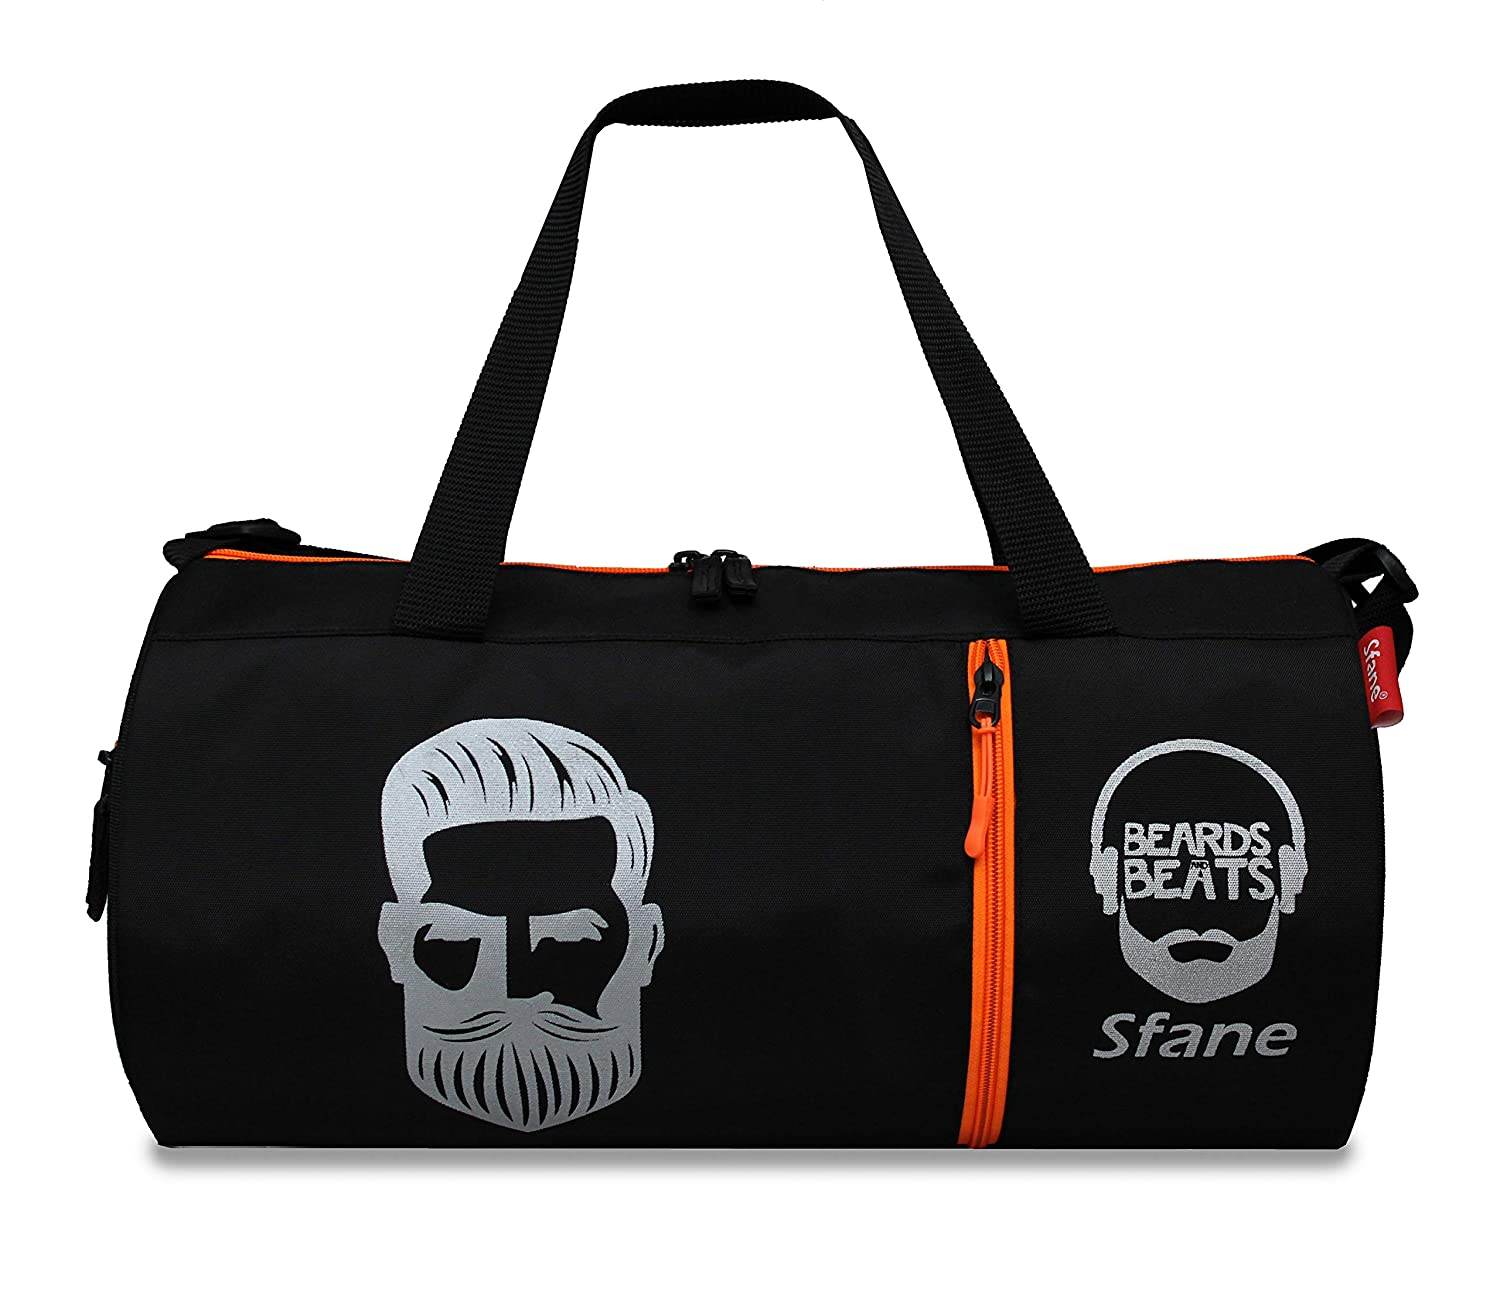 Sfane Black Sports Duffle Gym